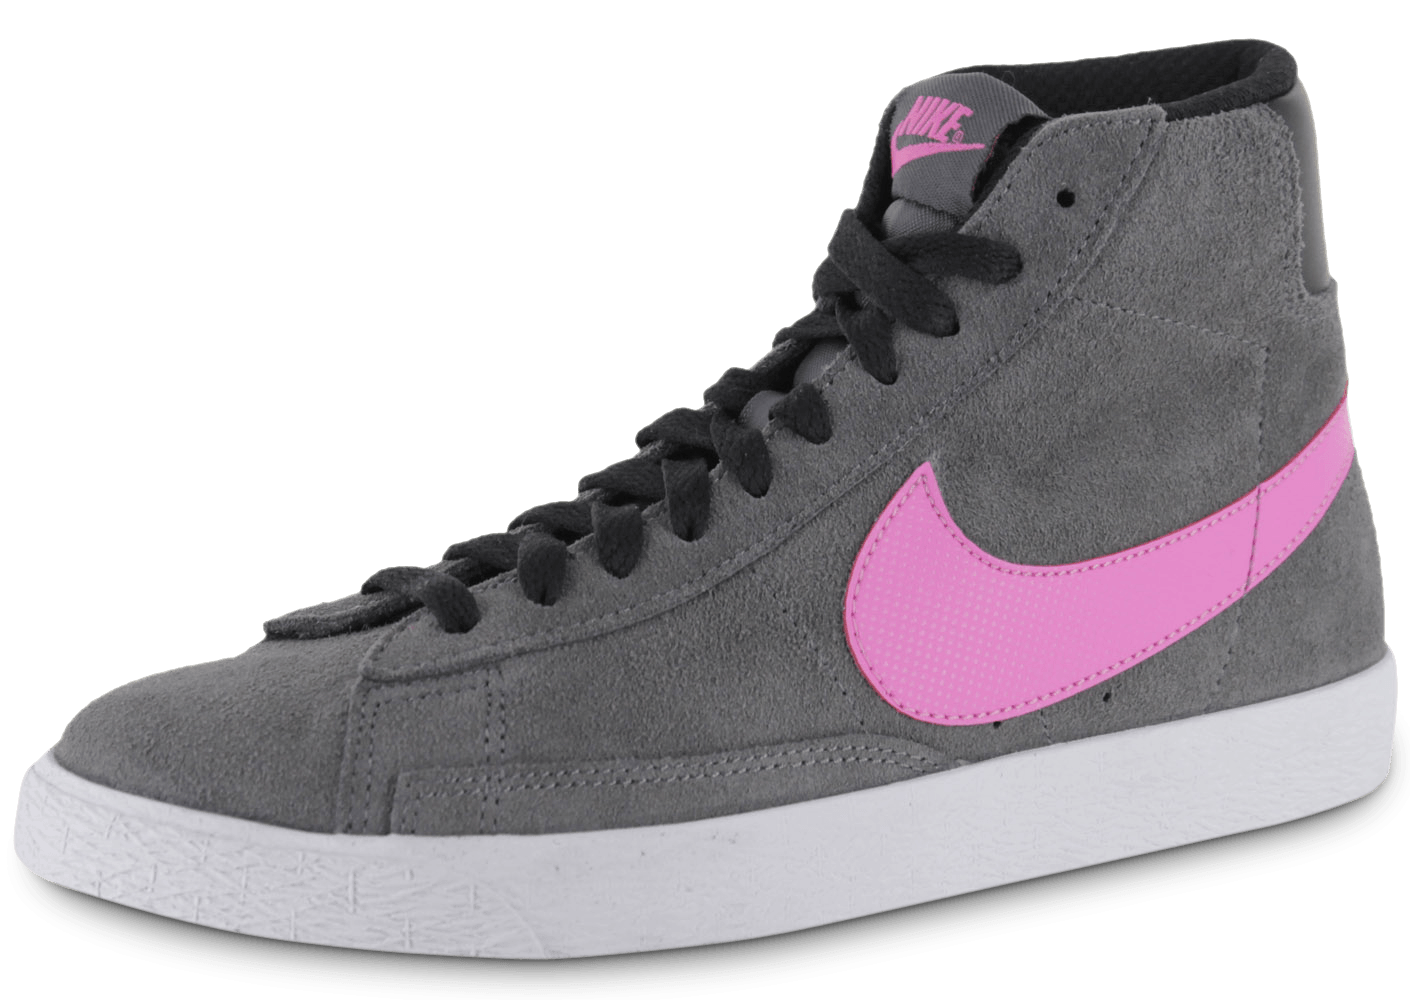 best sneakers af0a9 f59f8 Nike Blazer Junior Grise Et Rose - Chaussures Chaussures - C